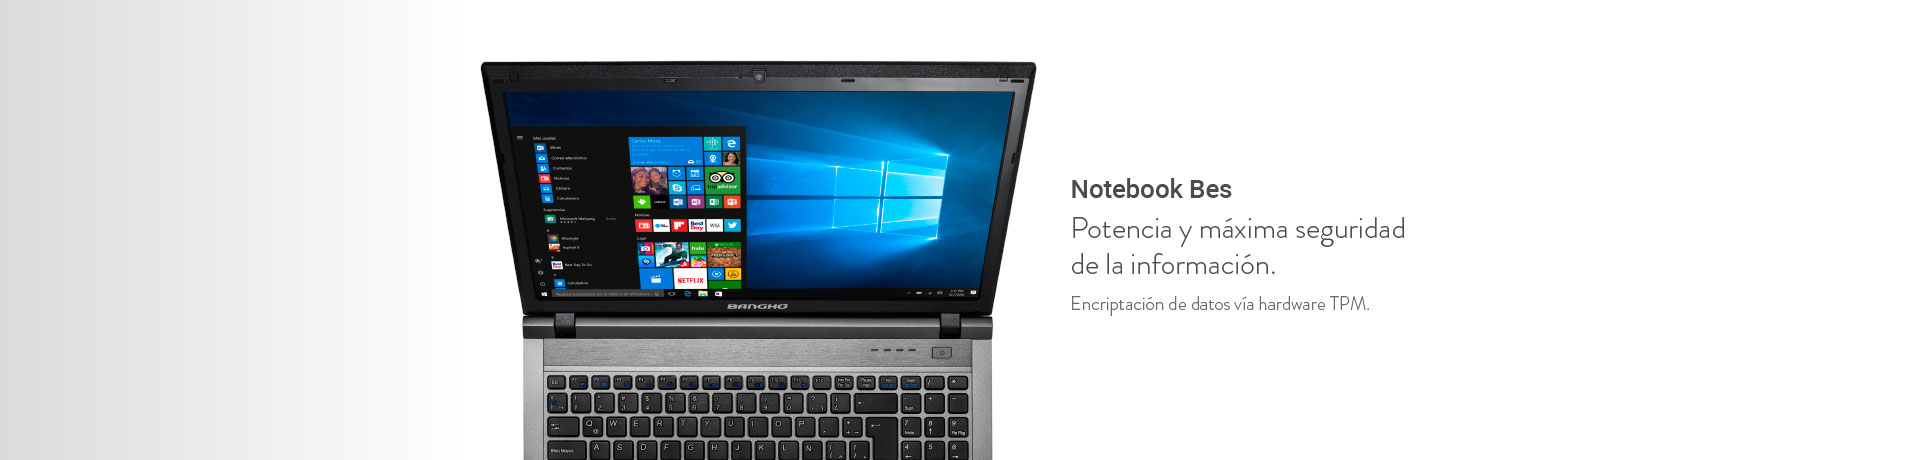 PYMES / Notebook Bes